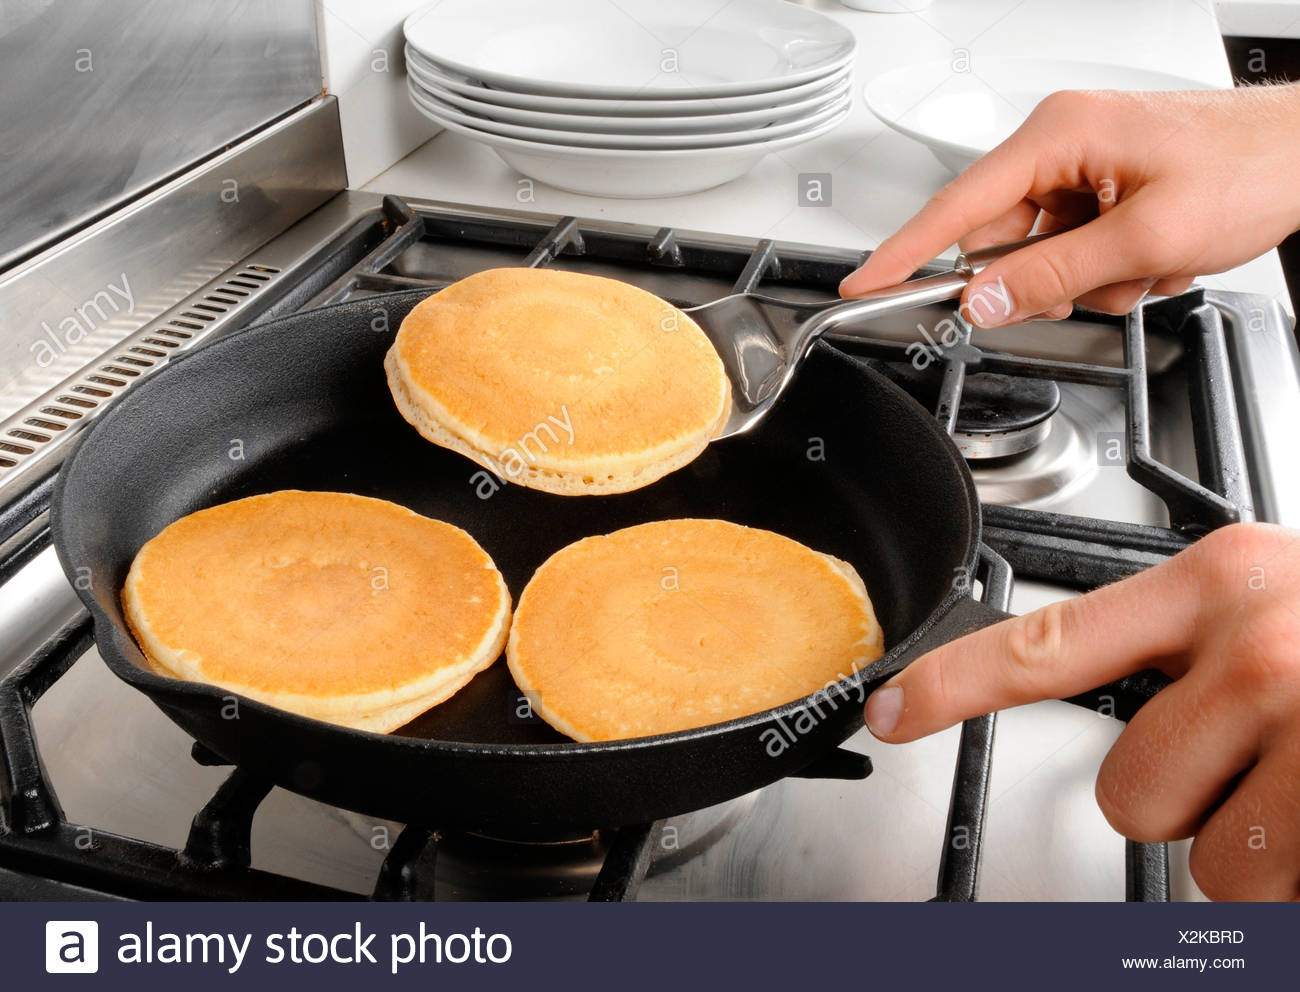 COOKING PANCAKES OR HOTCAKES - Stock Image